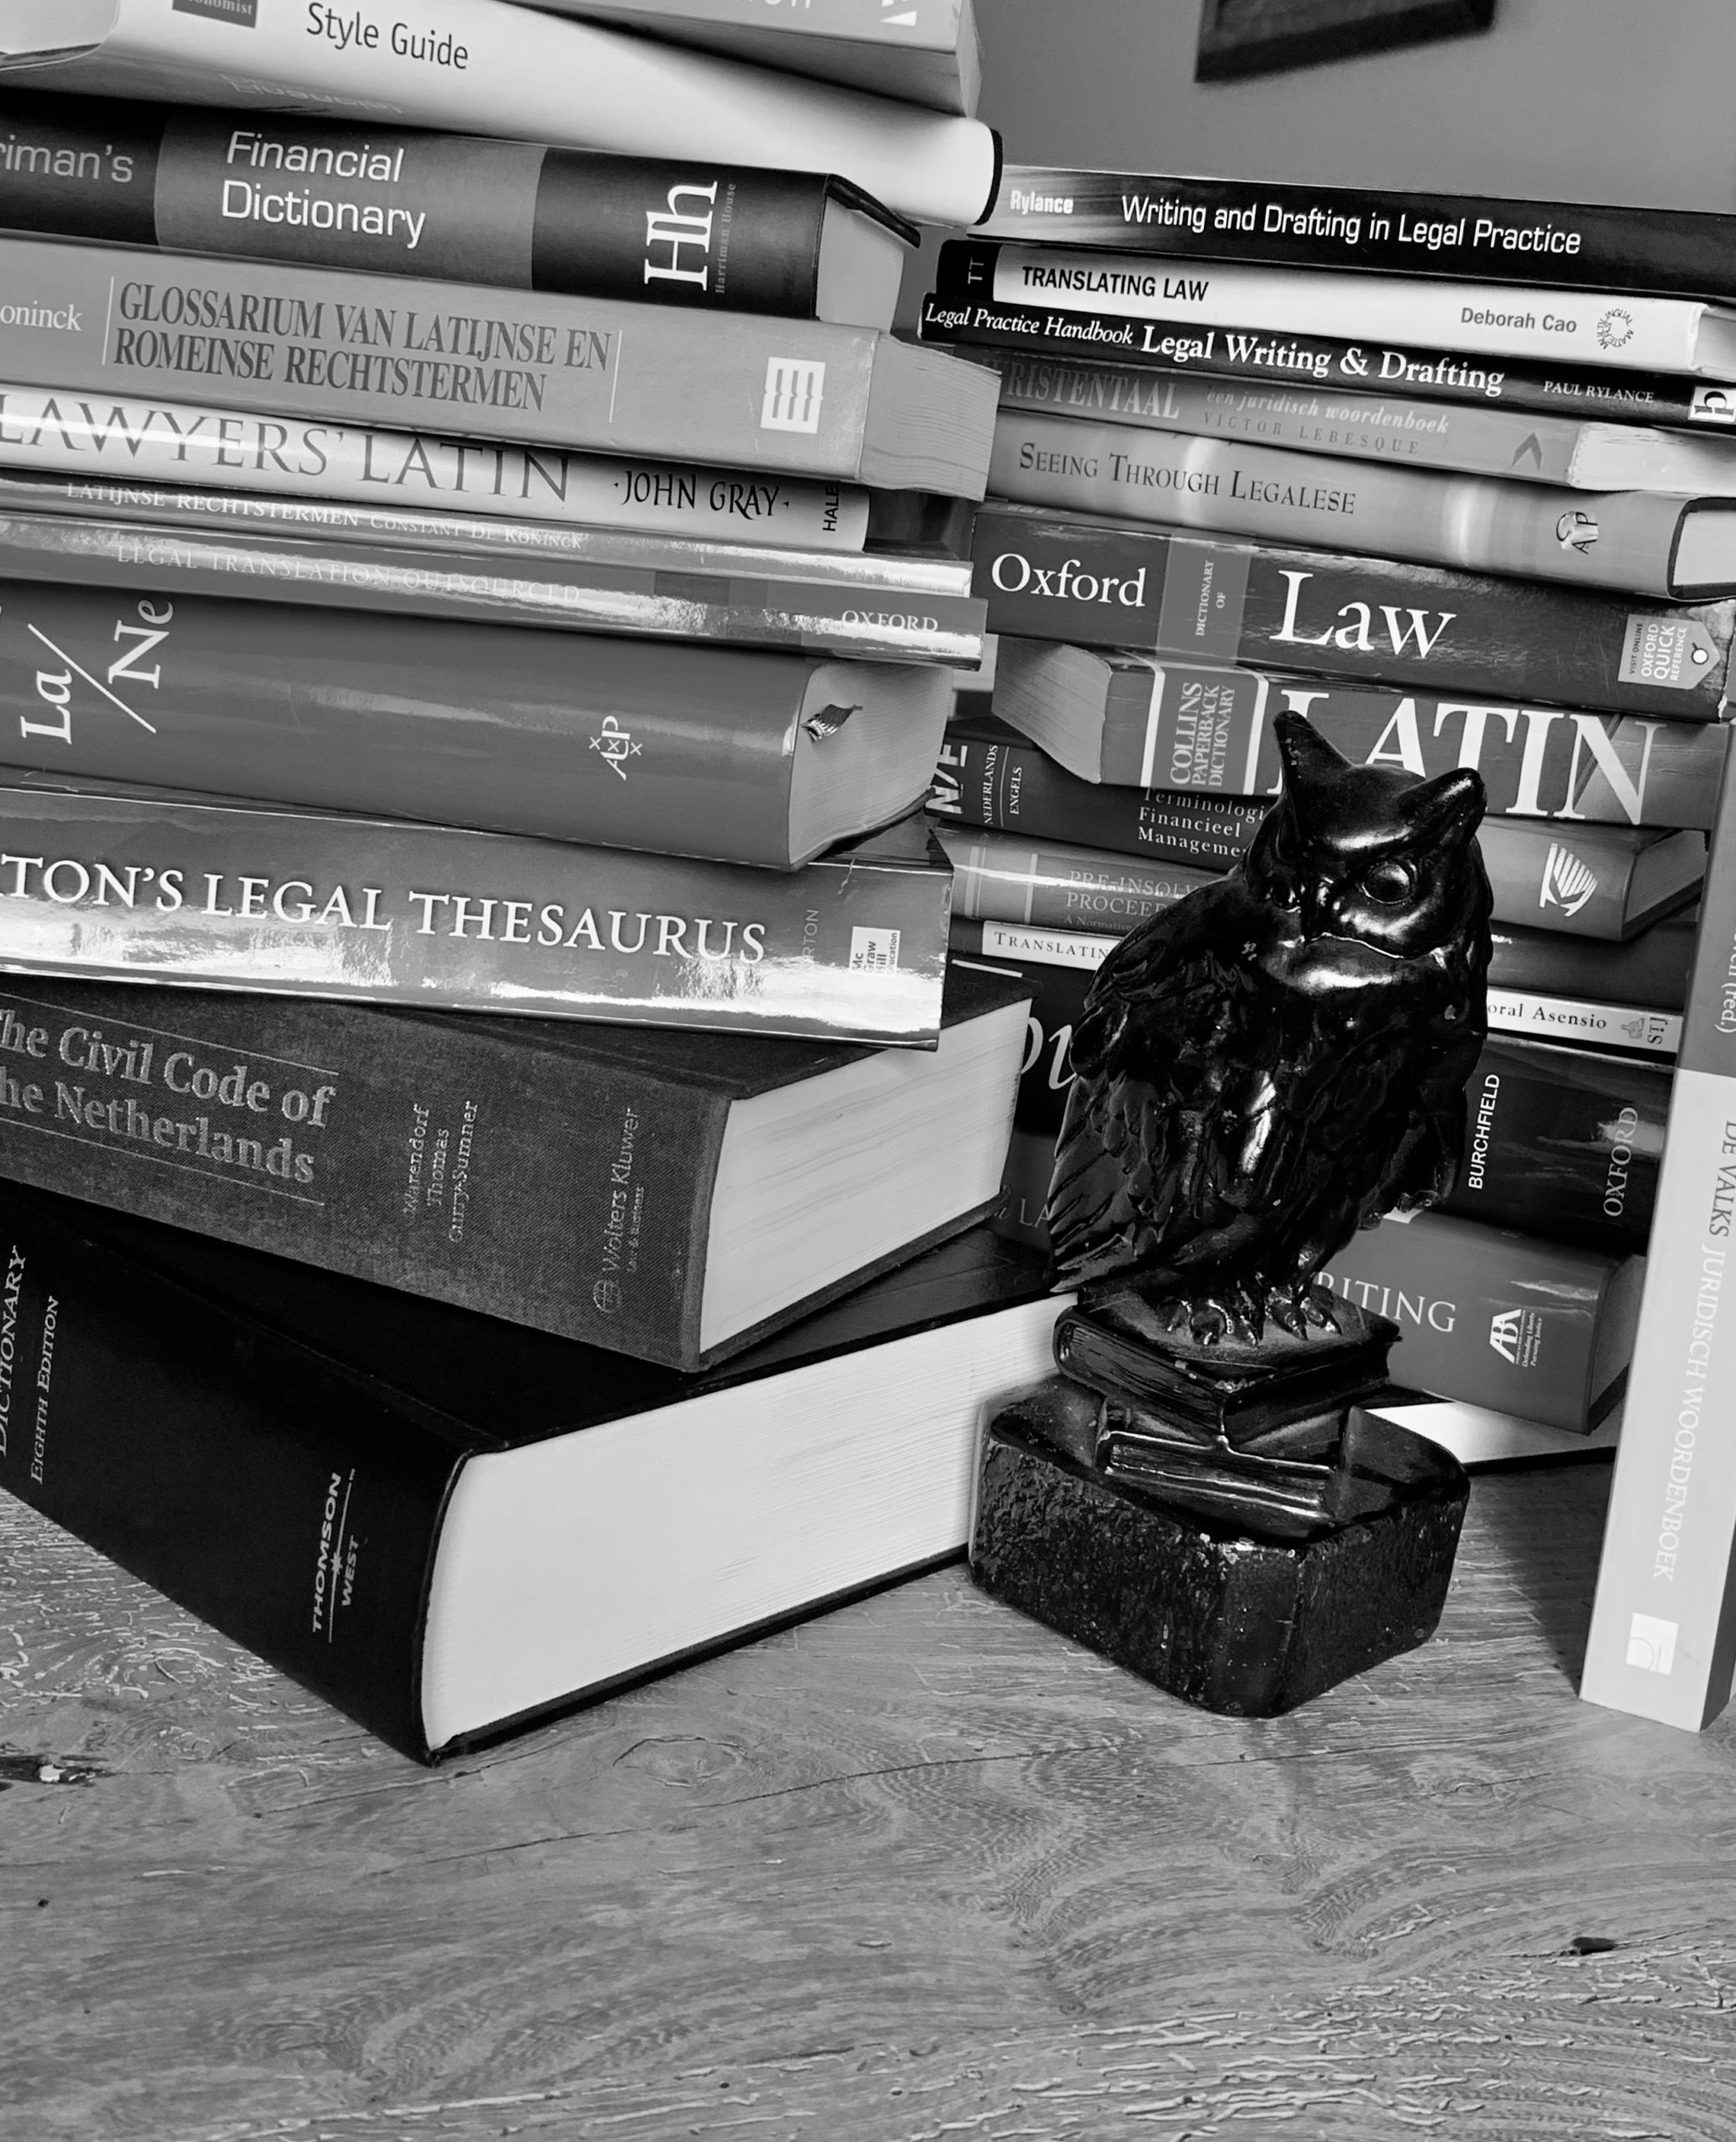 Statue of owl in front of stack of legal dictionaries and text books for corporate law and commercial litigation